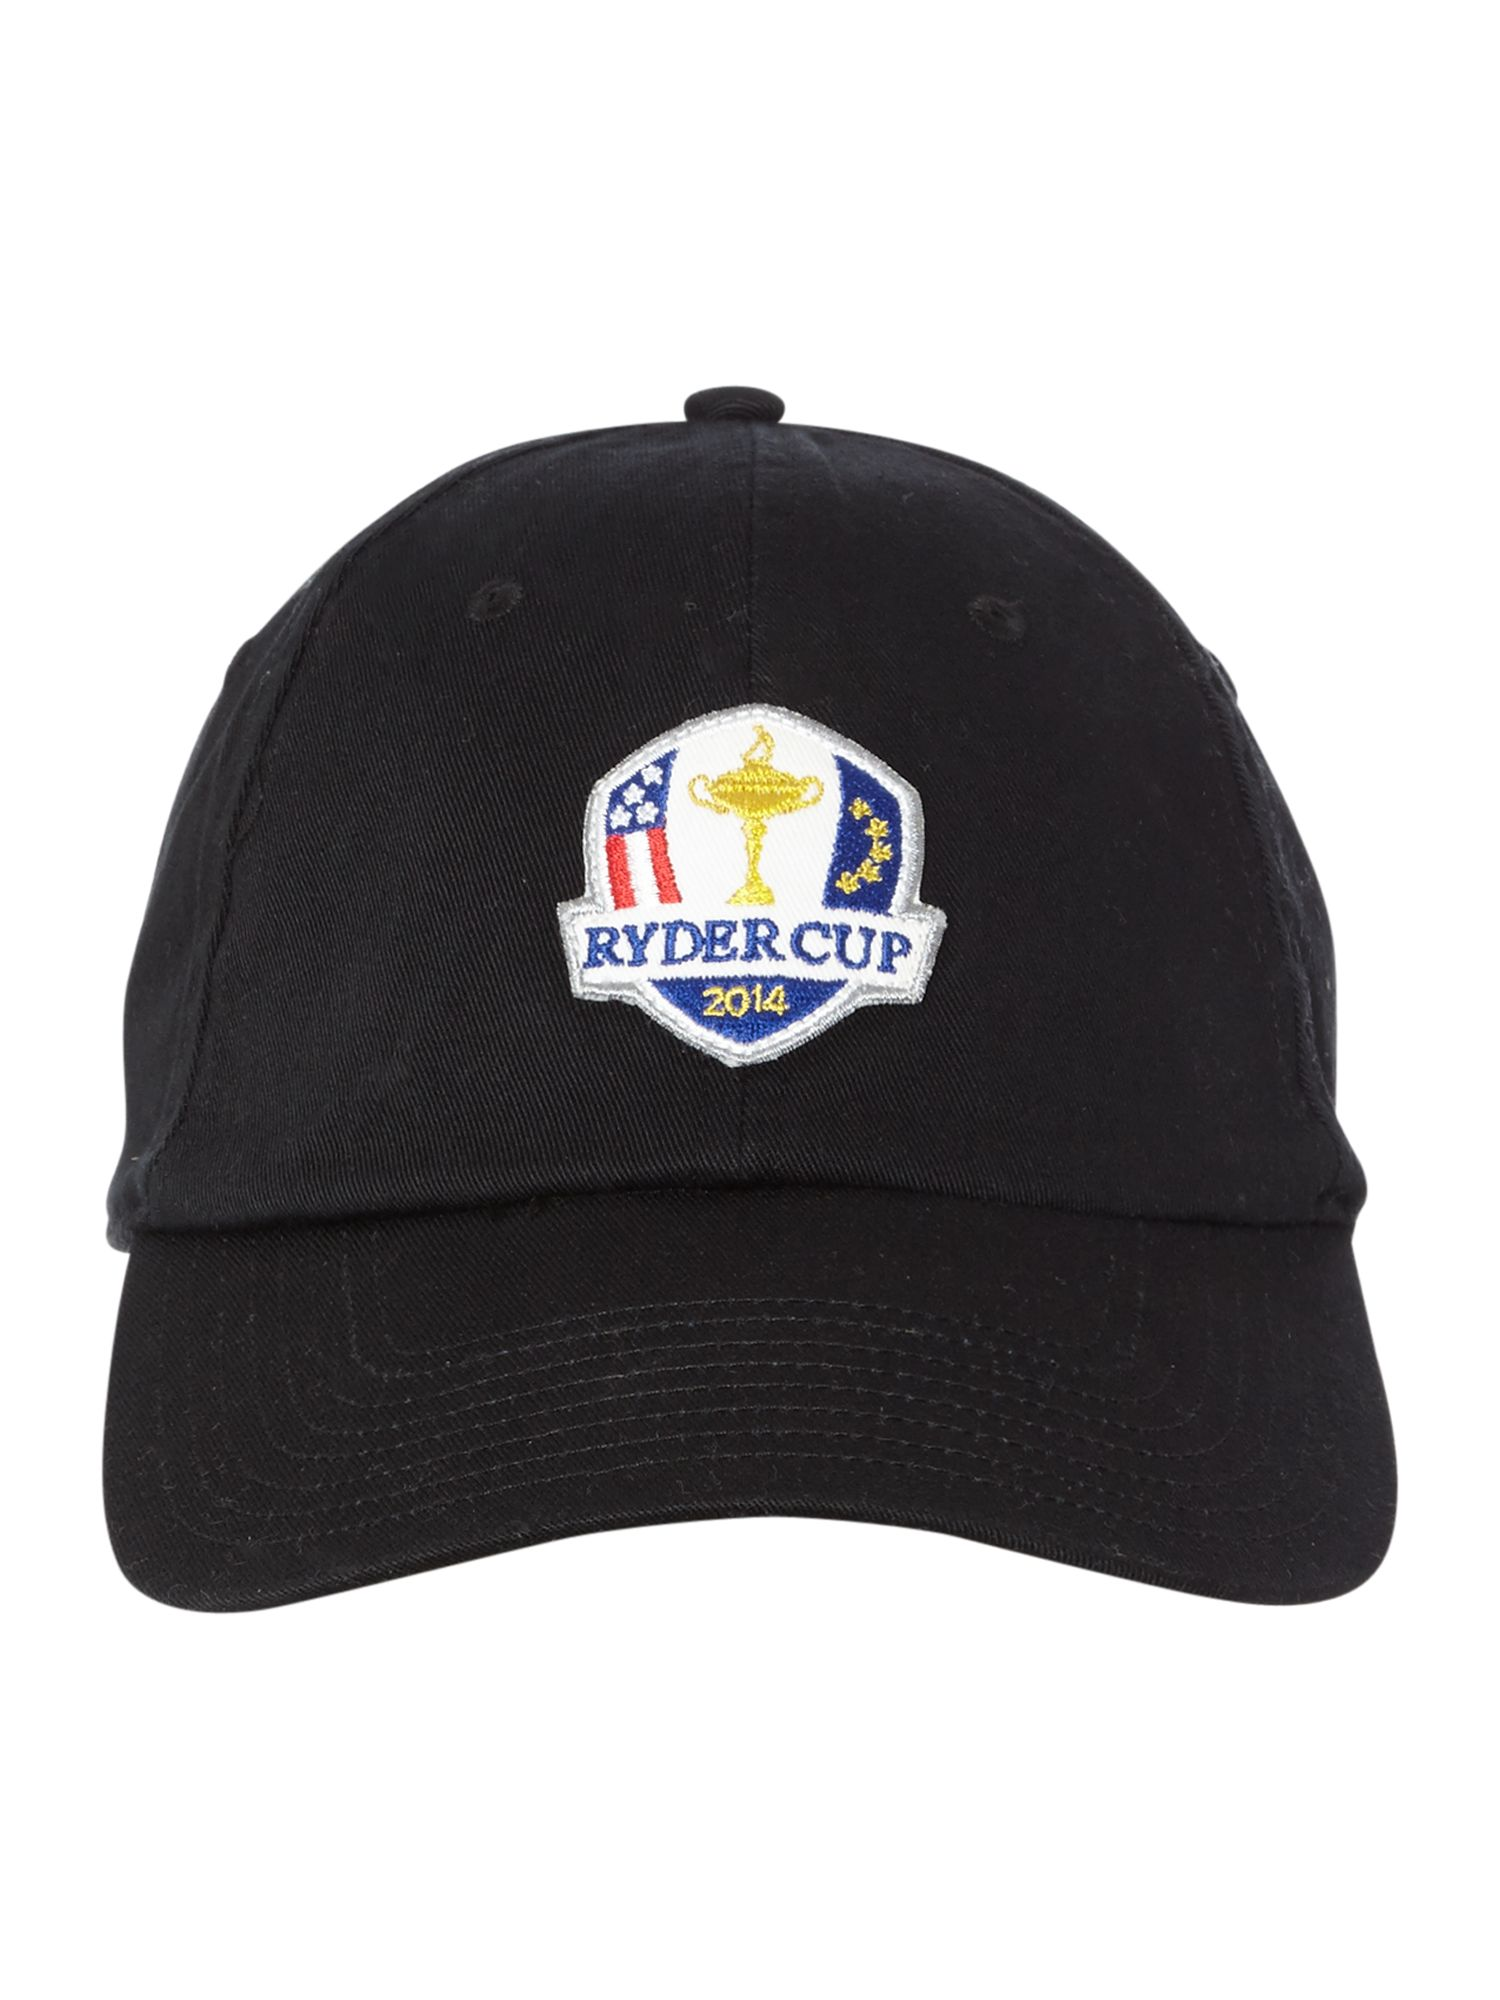 Polo Golf Ryder Cup Fairway Cap